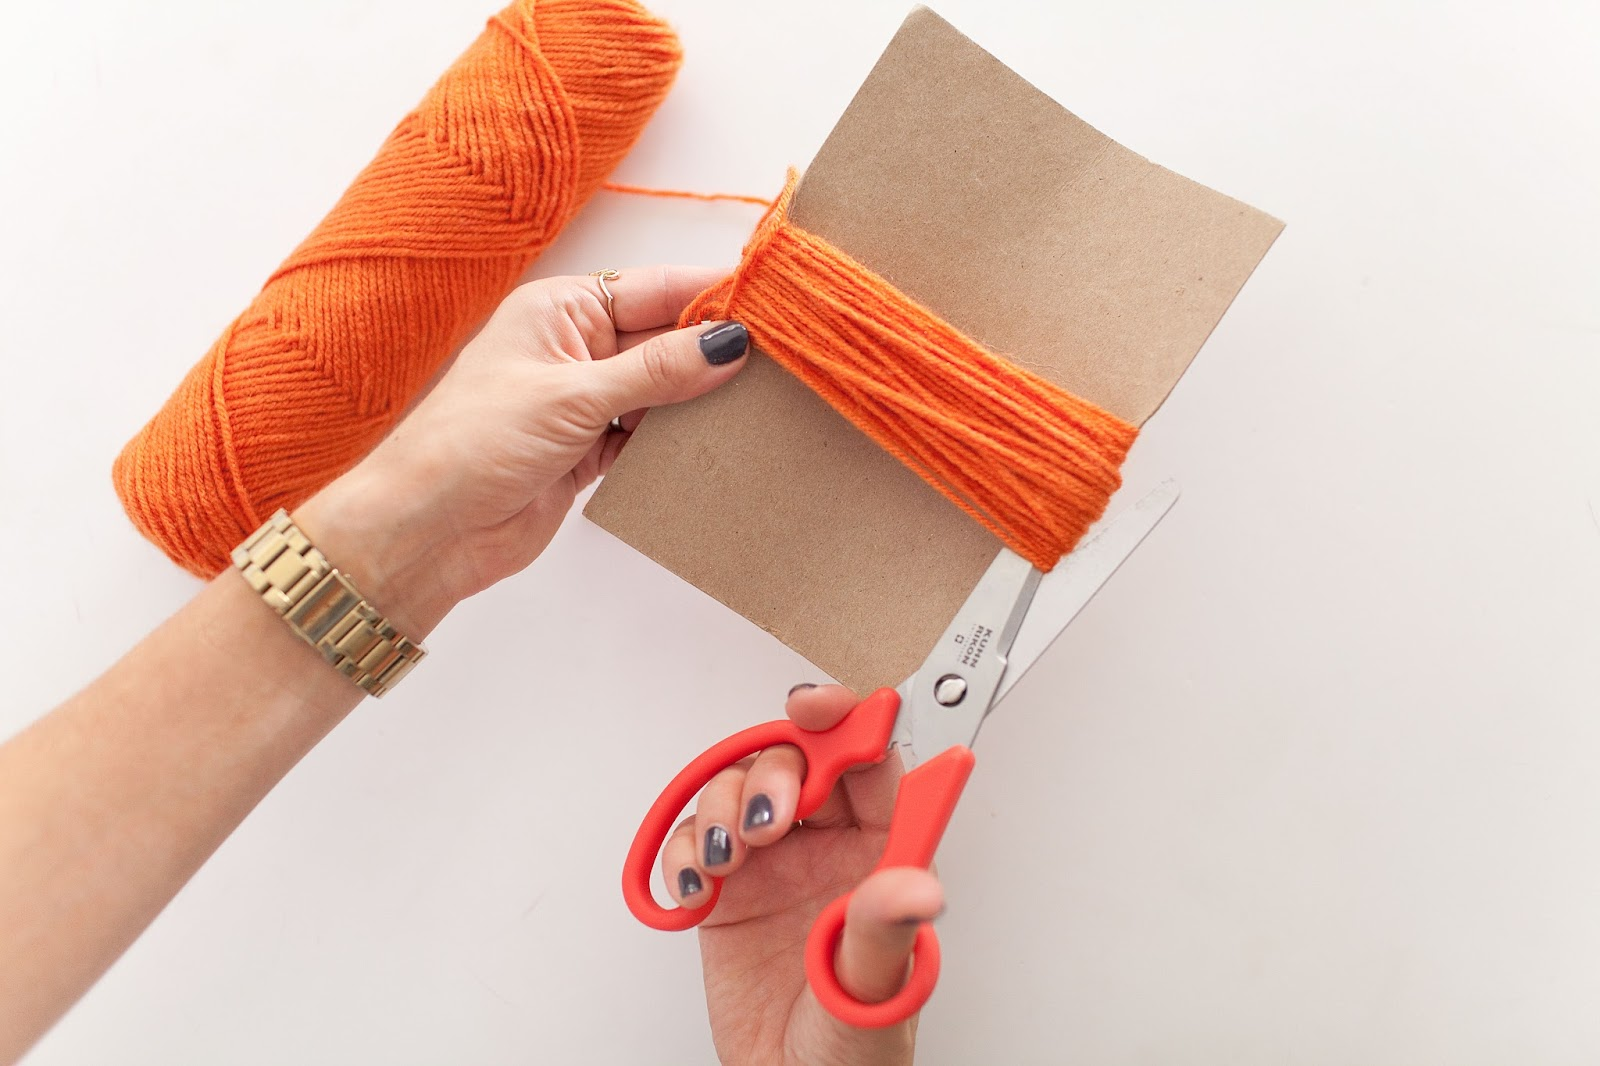 how to cut ties with someone you love